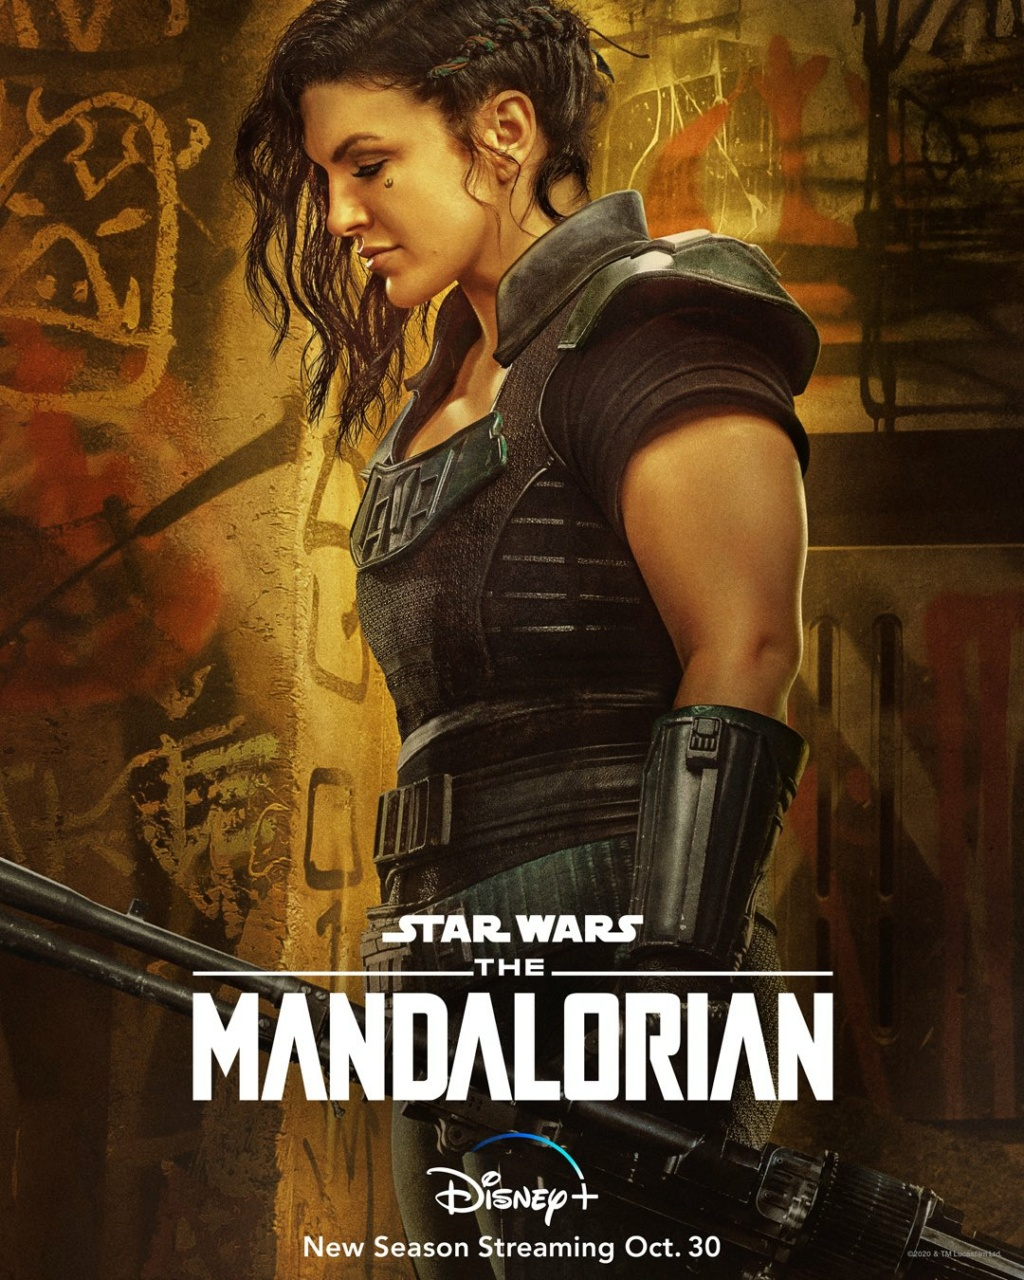 Les NEWS de la saison 2 de Star Wars The Mandalorian  - Page 2 Img_2067